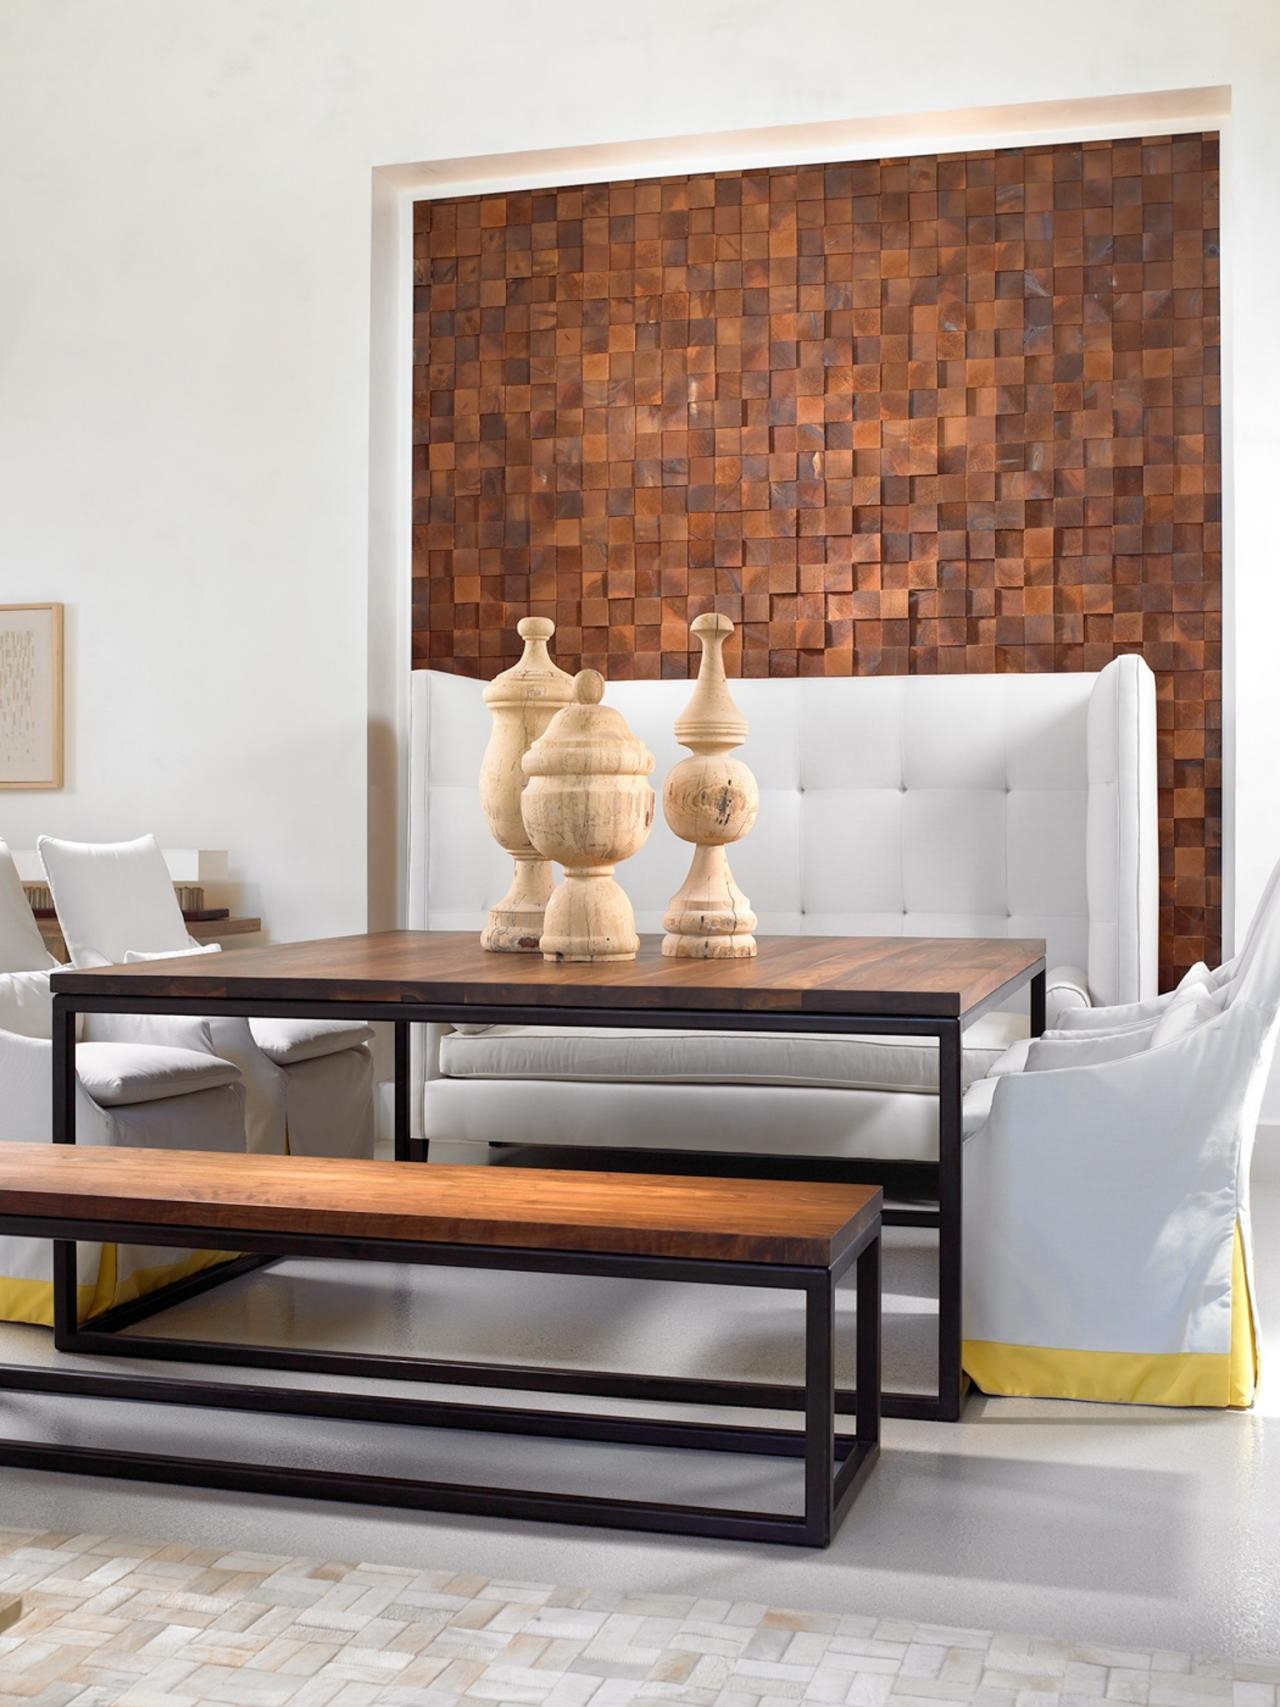 Remarkable Ideas For Wood Accent Wall Features Brown Color Wood In Most Recent Wooden Wall Accents (View 15 of 15)